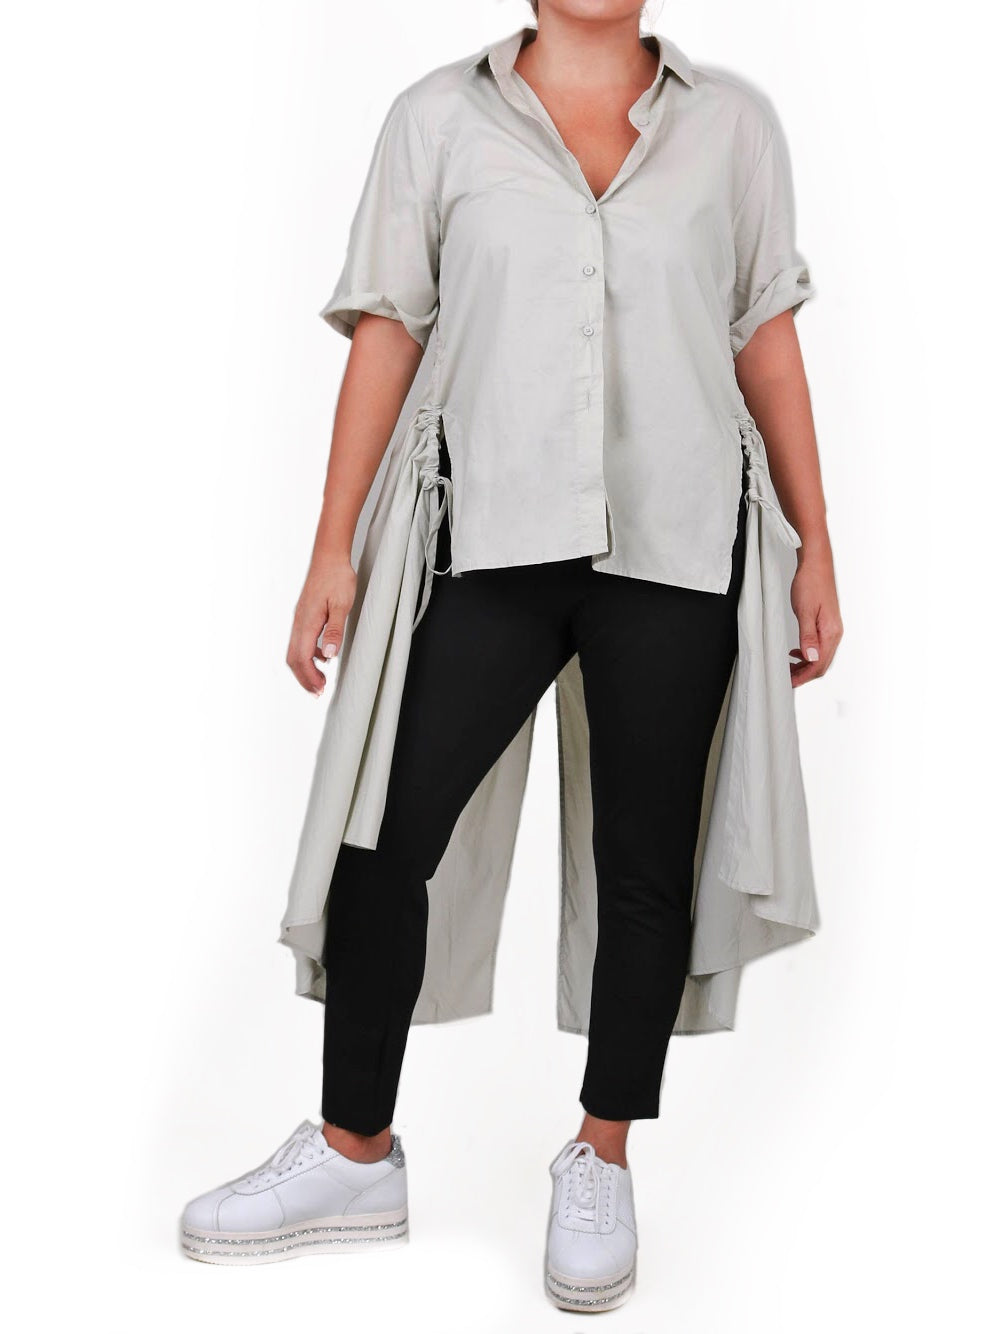 HI-LO BUTTON DOWN SHIRT WITH SIDE RUSHING